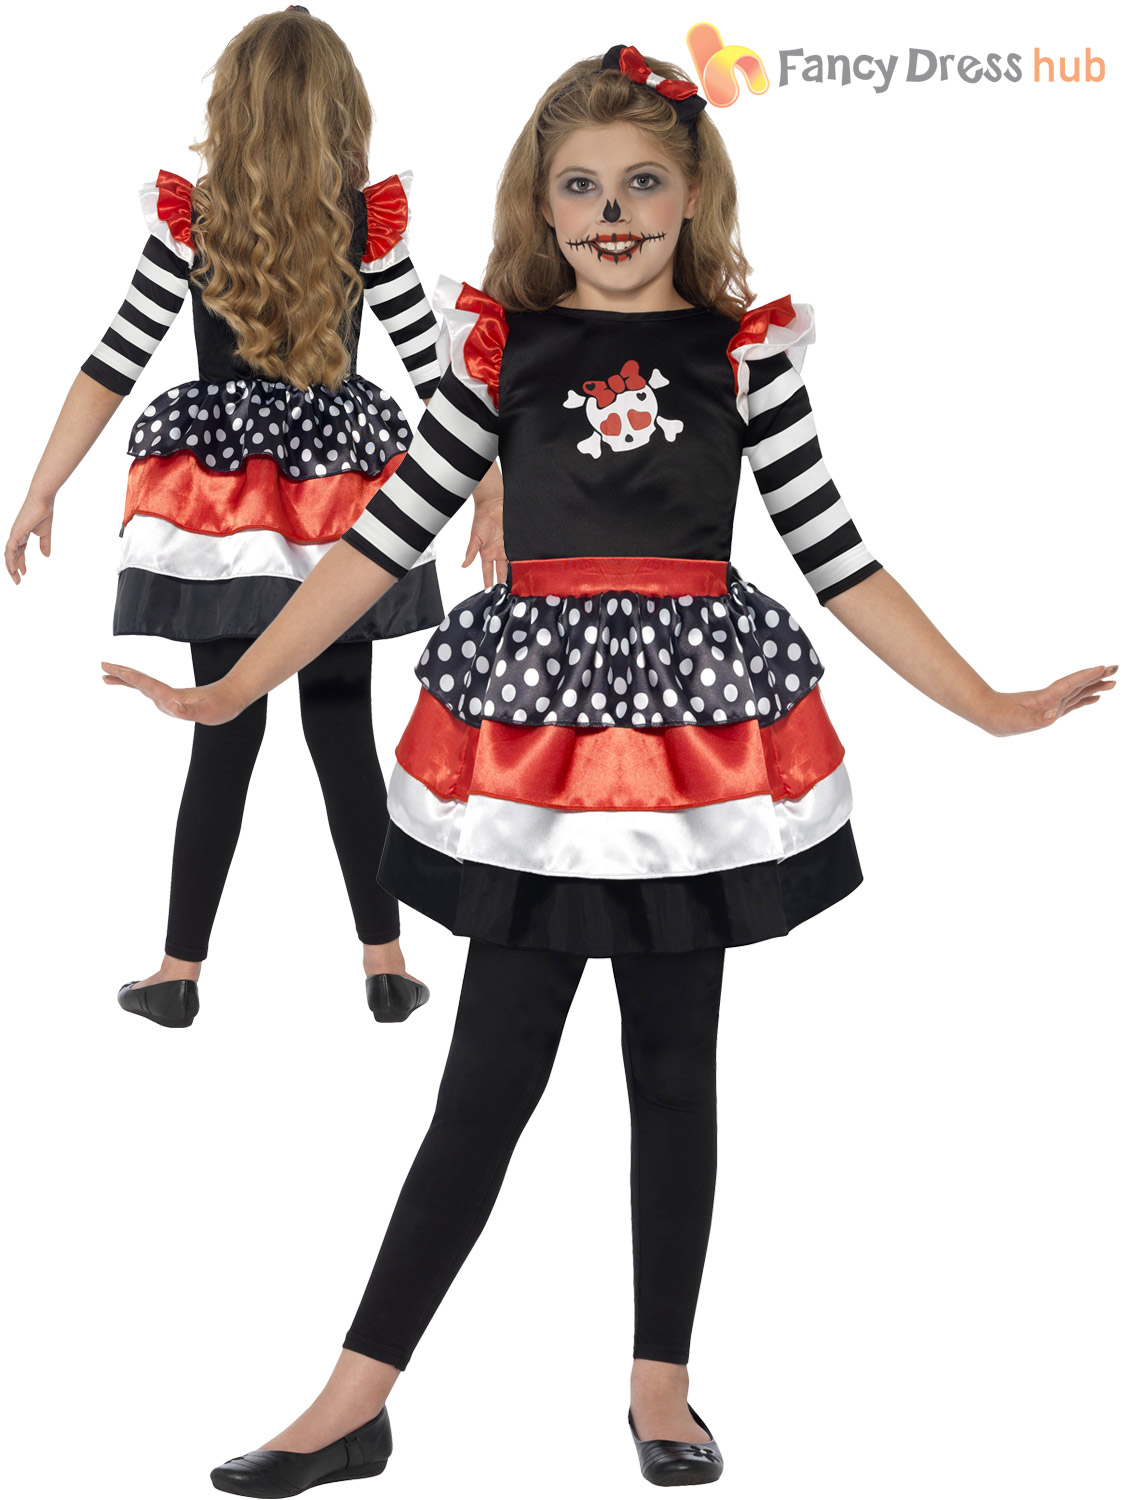 Girls Day Of The Dead Sugar Skull Halloween Party Fancy Dress Costume Ages 4-12